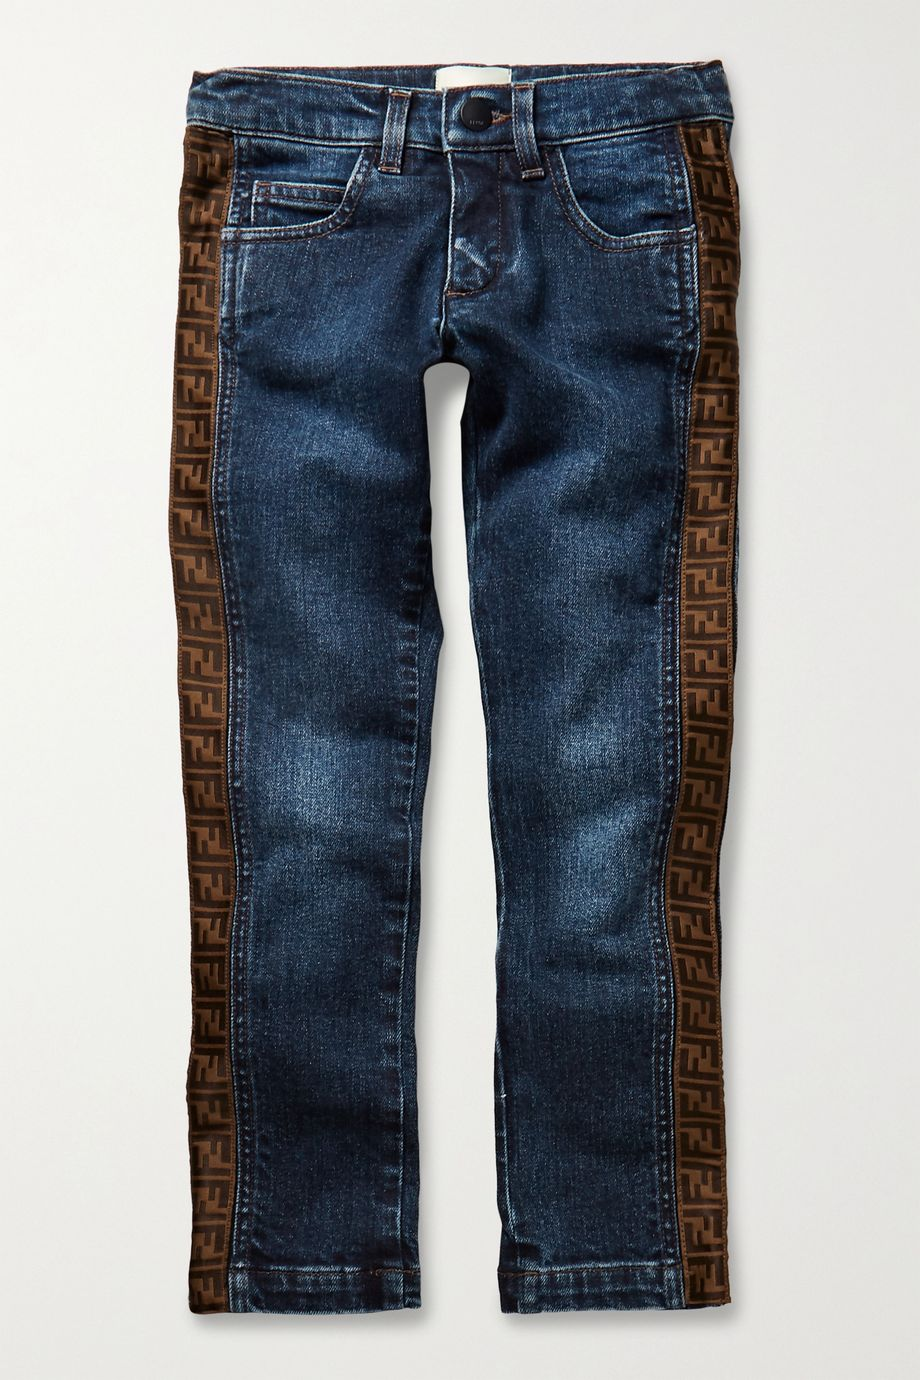 Fendi Kids Ages 3 - 7 jacquard-trimmed jeans